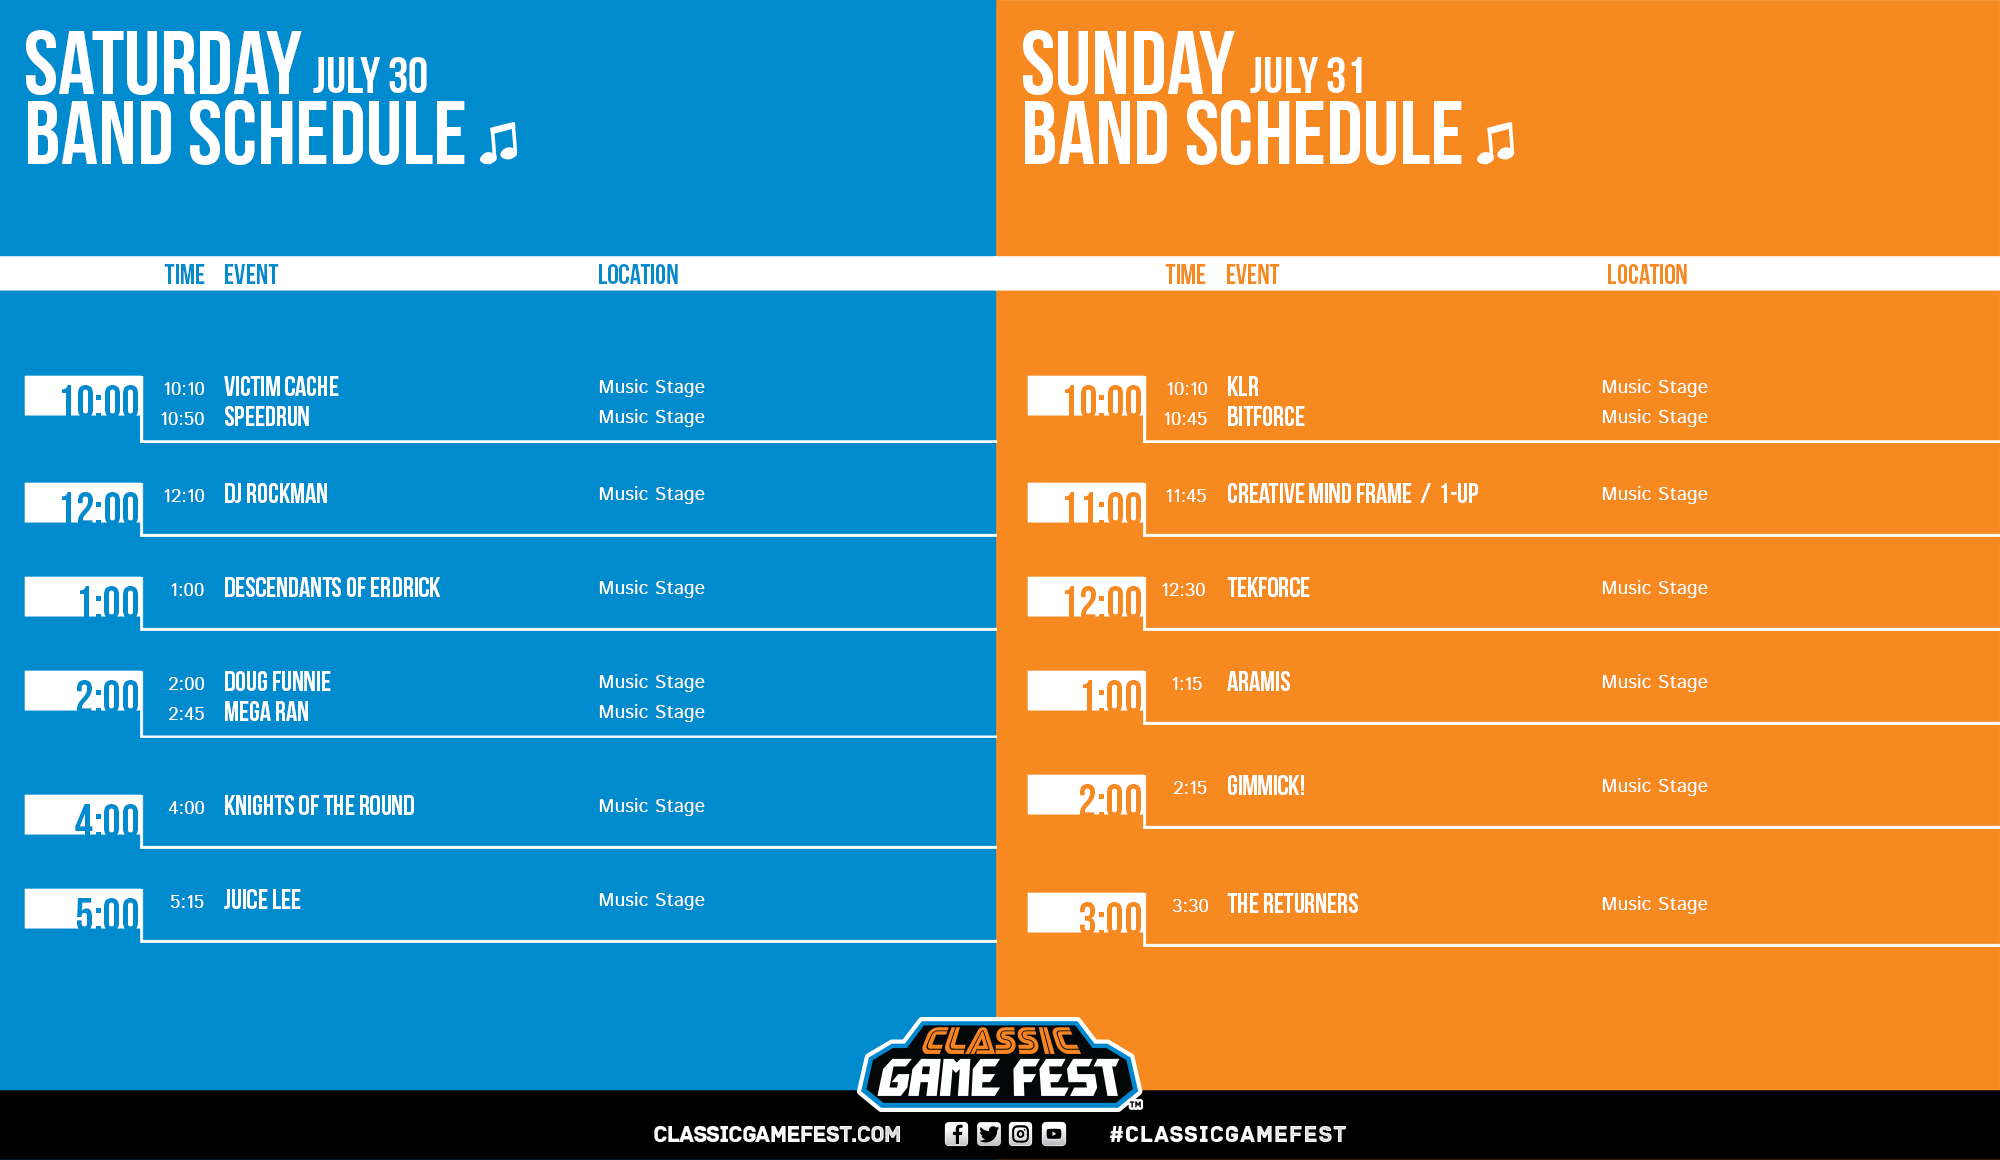 cgf-band-schedule-social-media-2